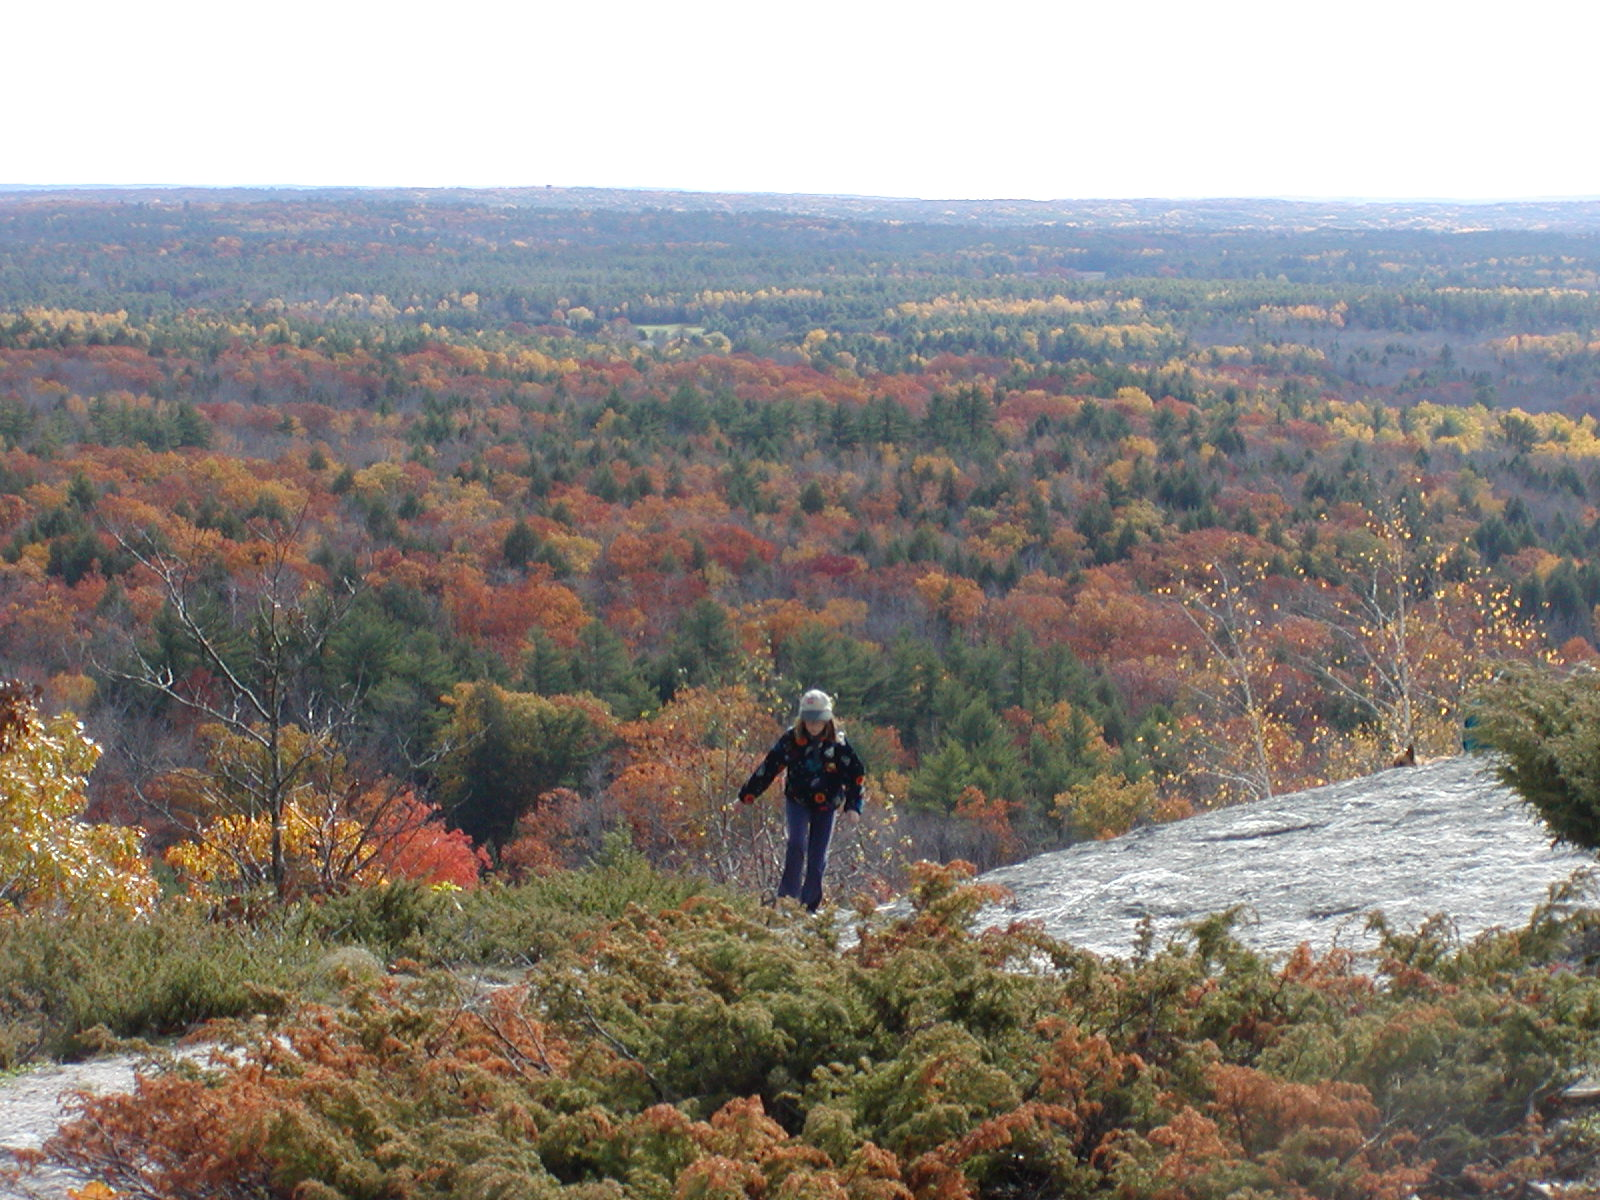 We'll be revisiting Bradbury Mountain in Pownal, ME this weekend.